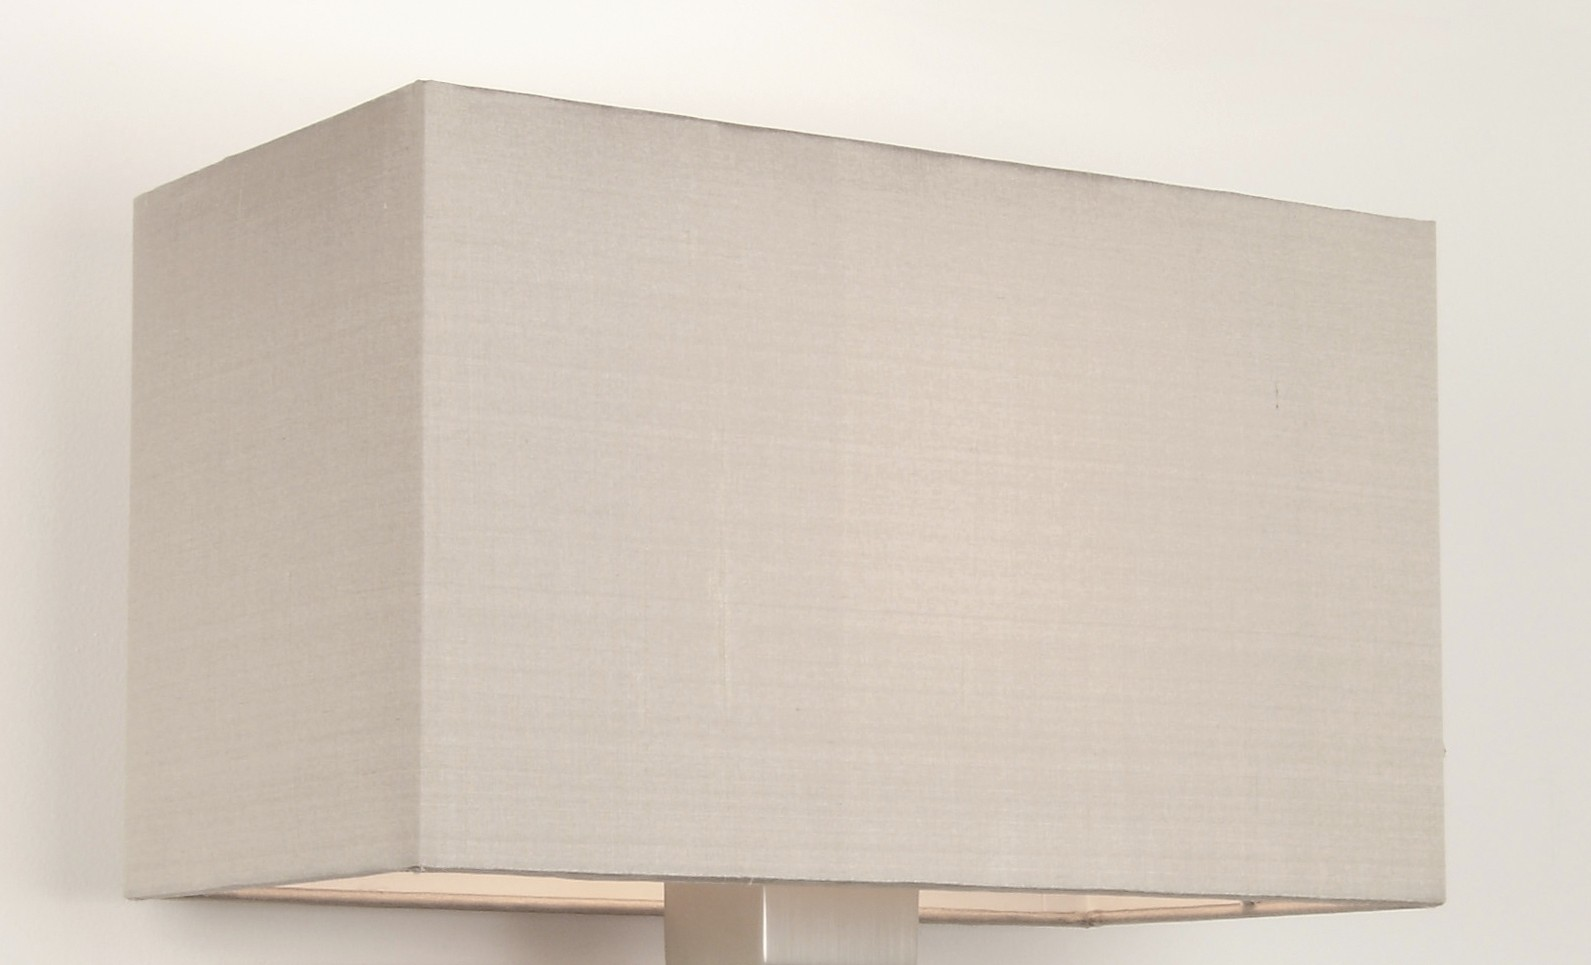 Rectangular Lamp Shades For Wall Lights : 4035 Oyster Rectangular Shade for Park Lane Grande Table or Wall Lamps AX4035